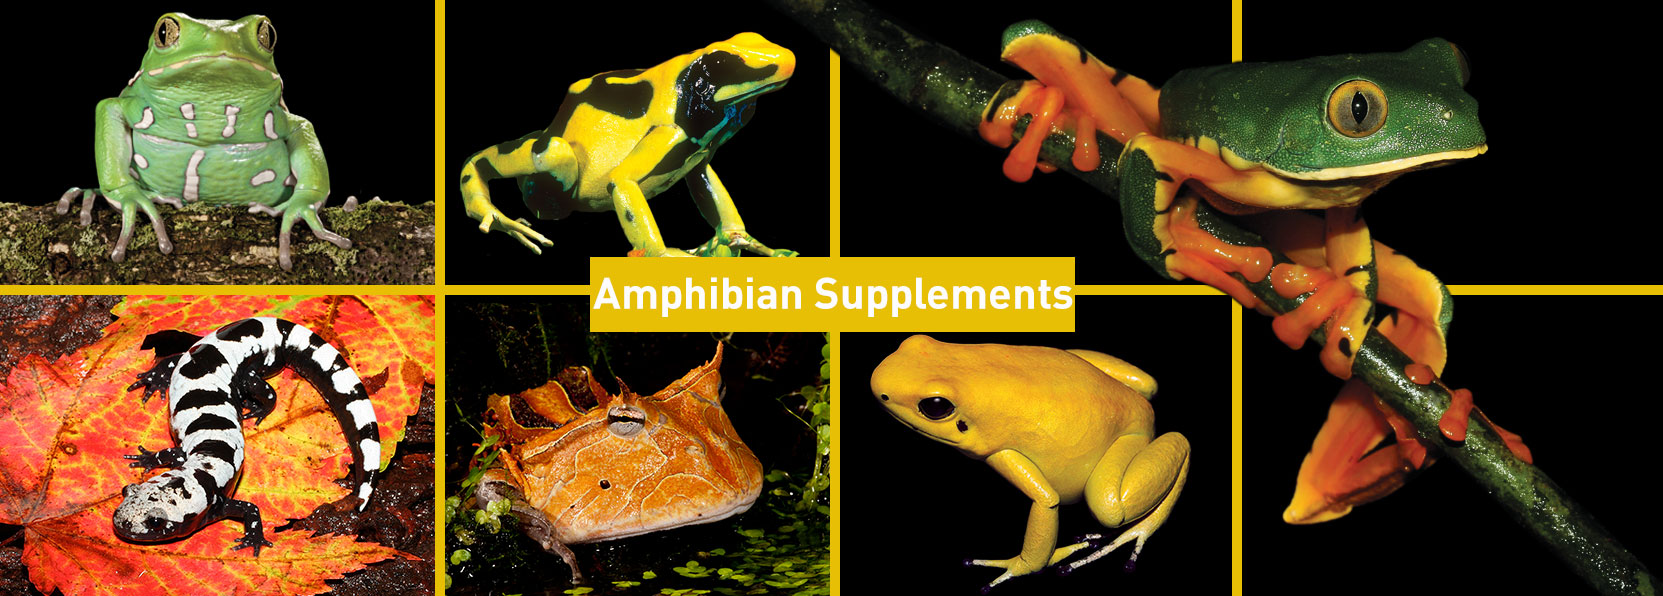 Amphibian-Products-banner